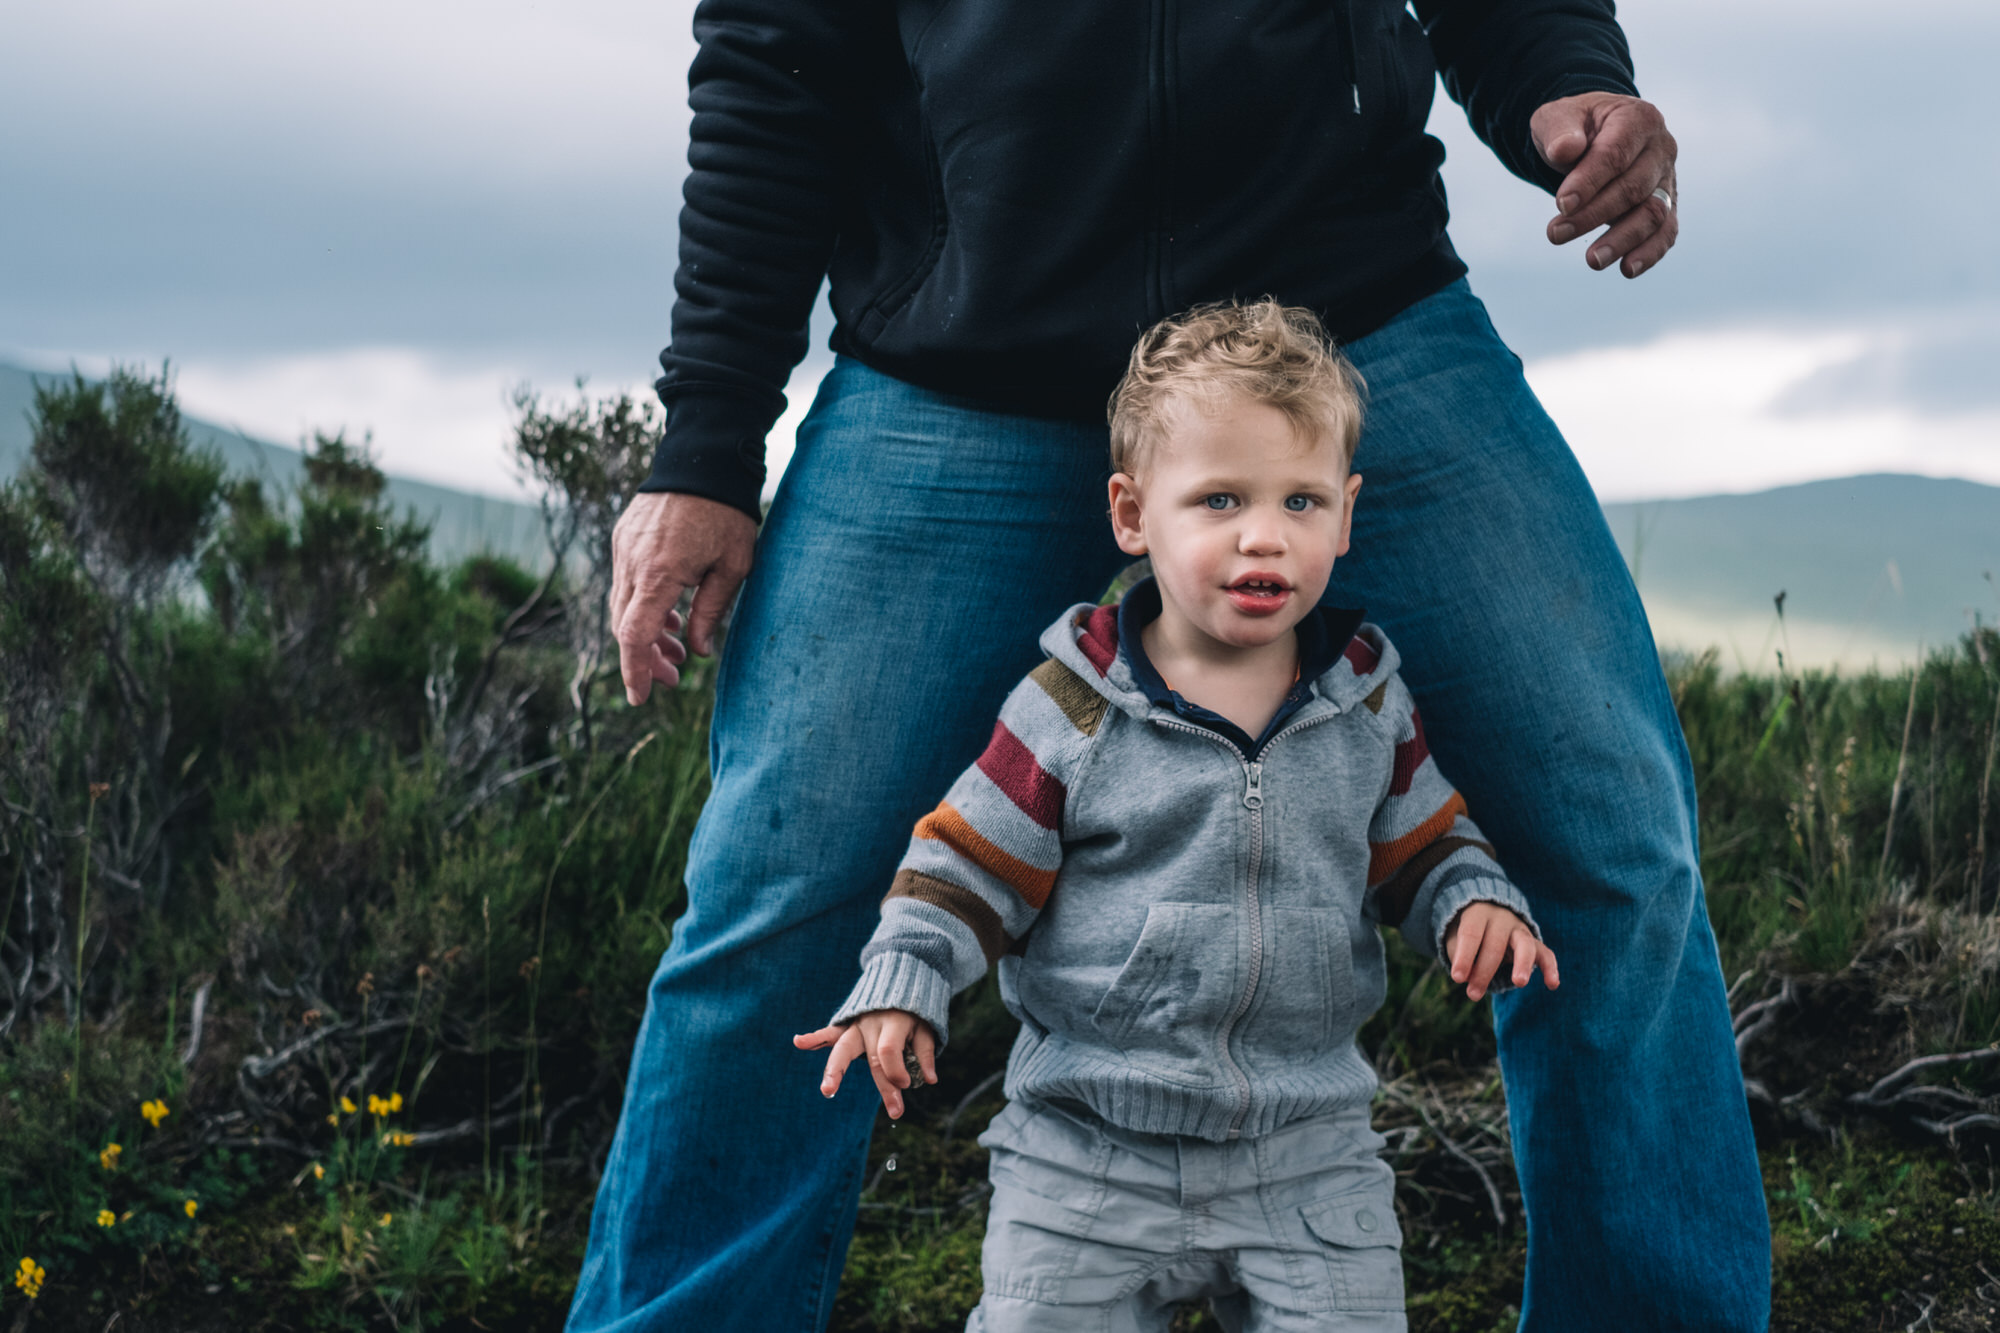 Son stands between his father's legs